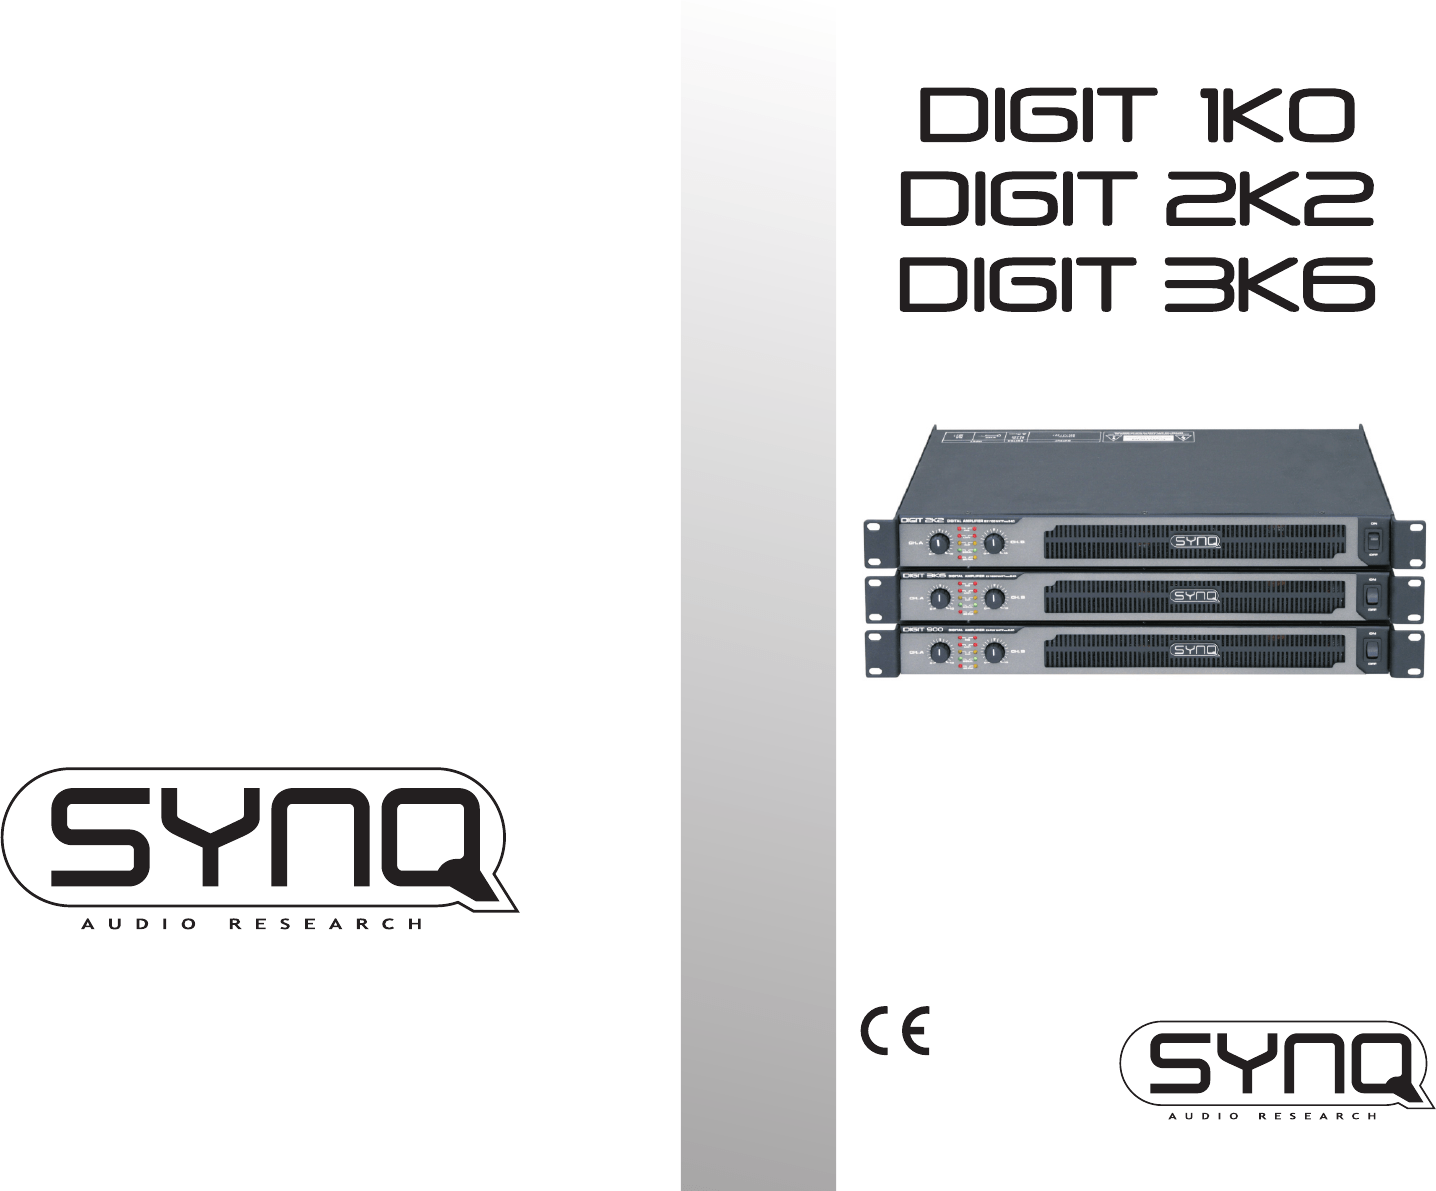 Manual Synq Digit 1k0 20 Paginas